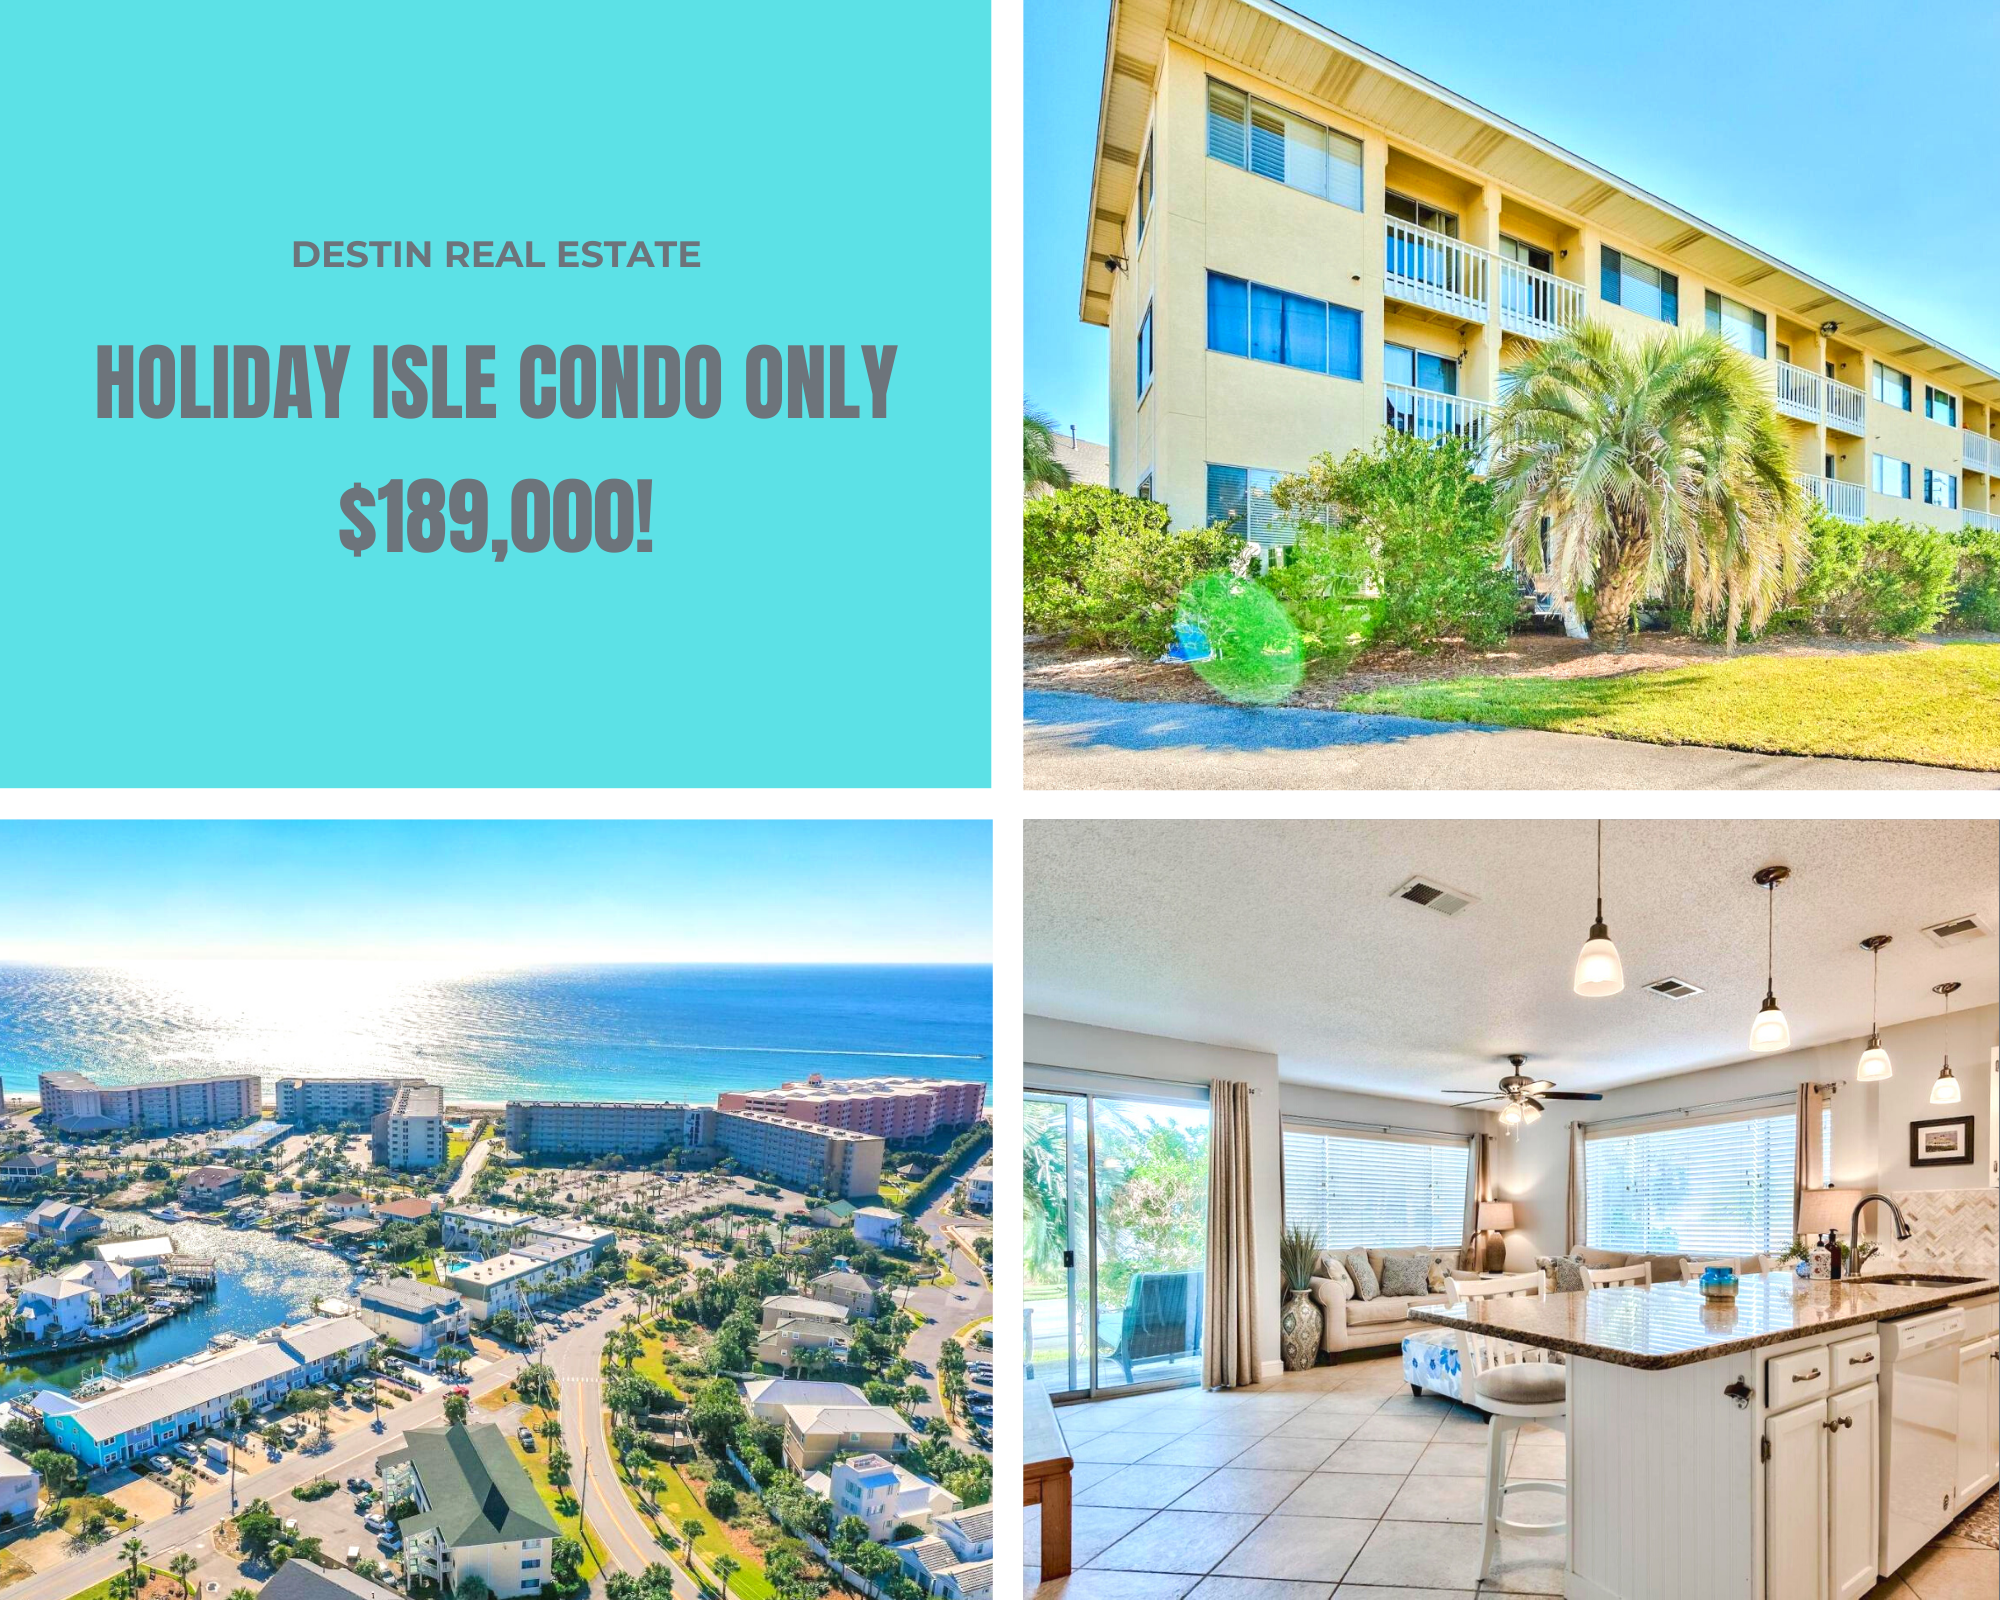 Holiday Isle condo for sale